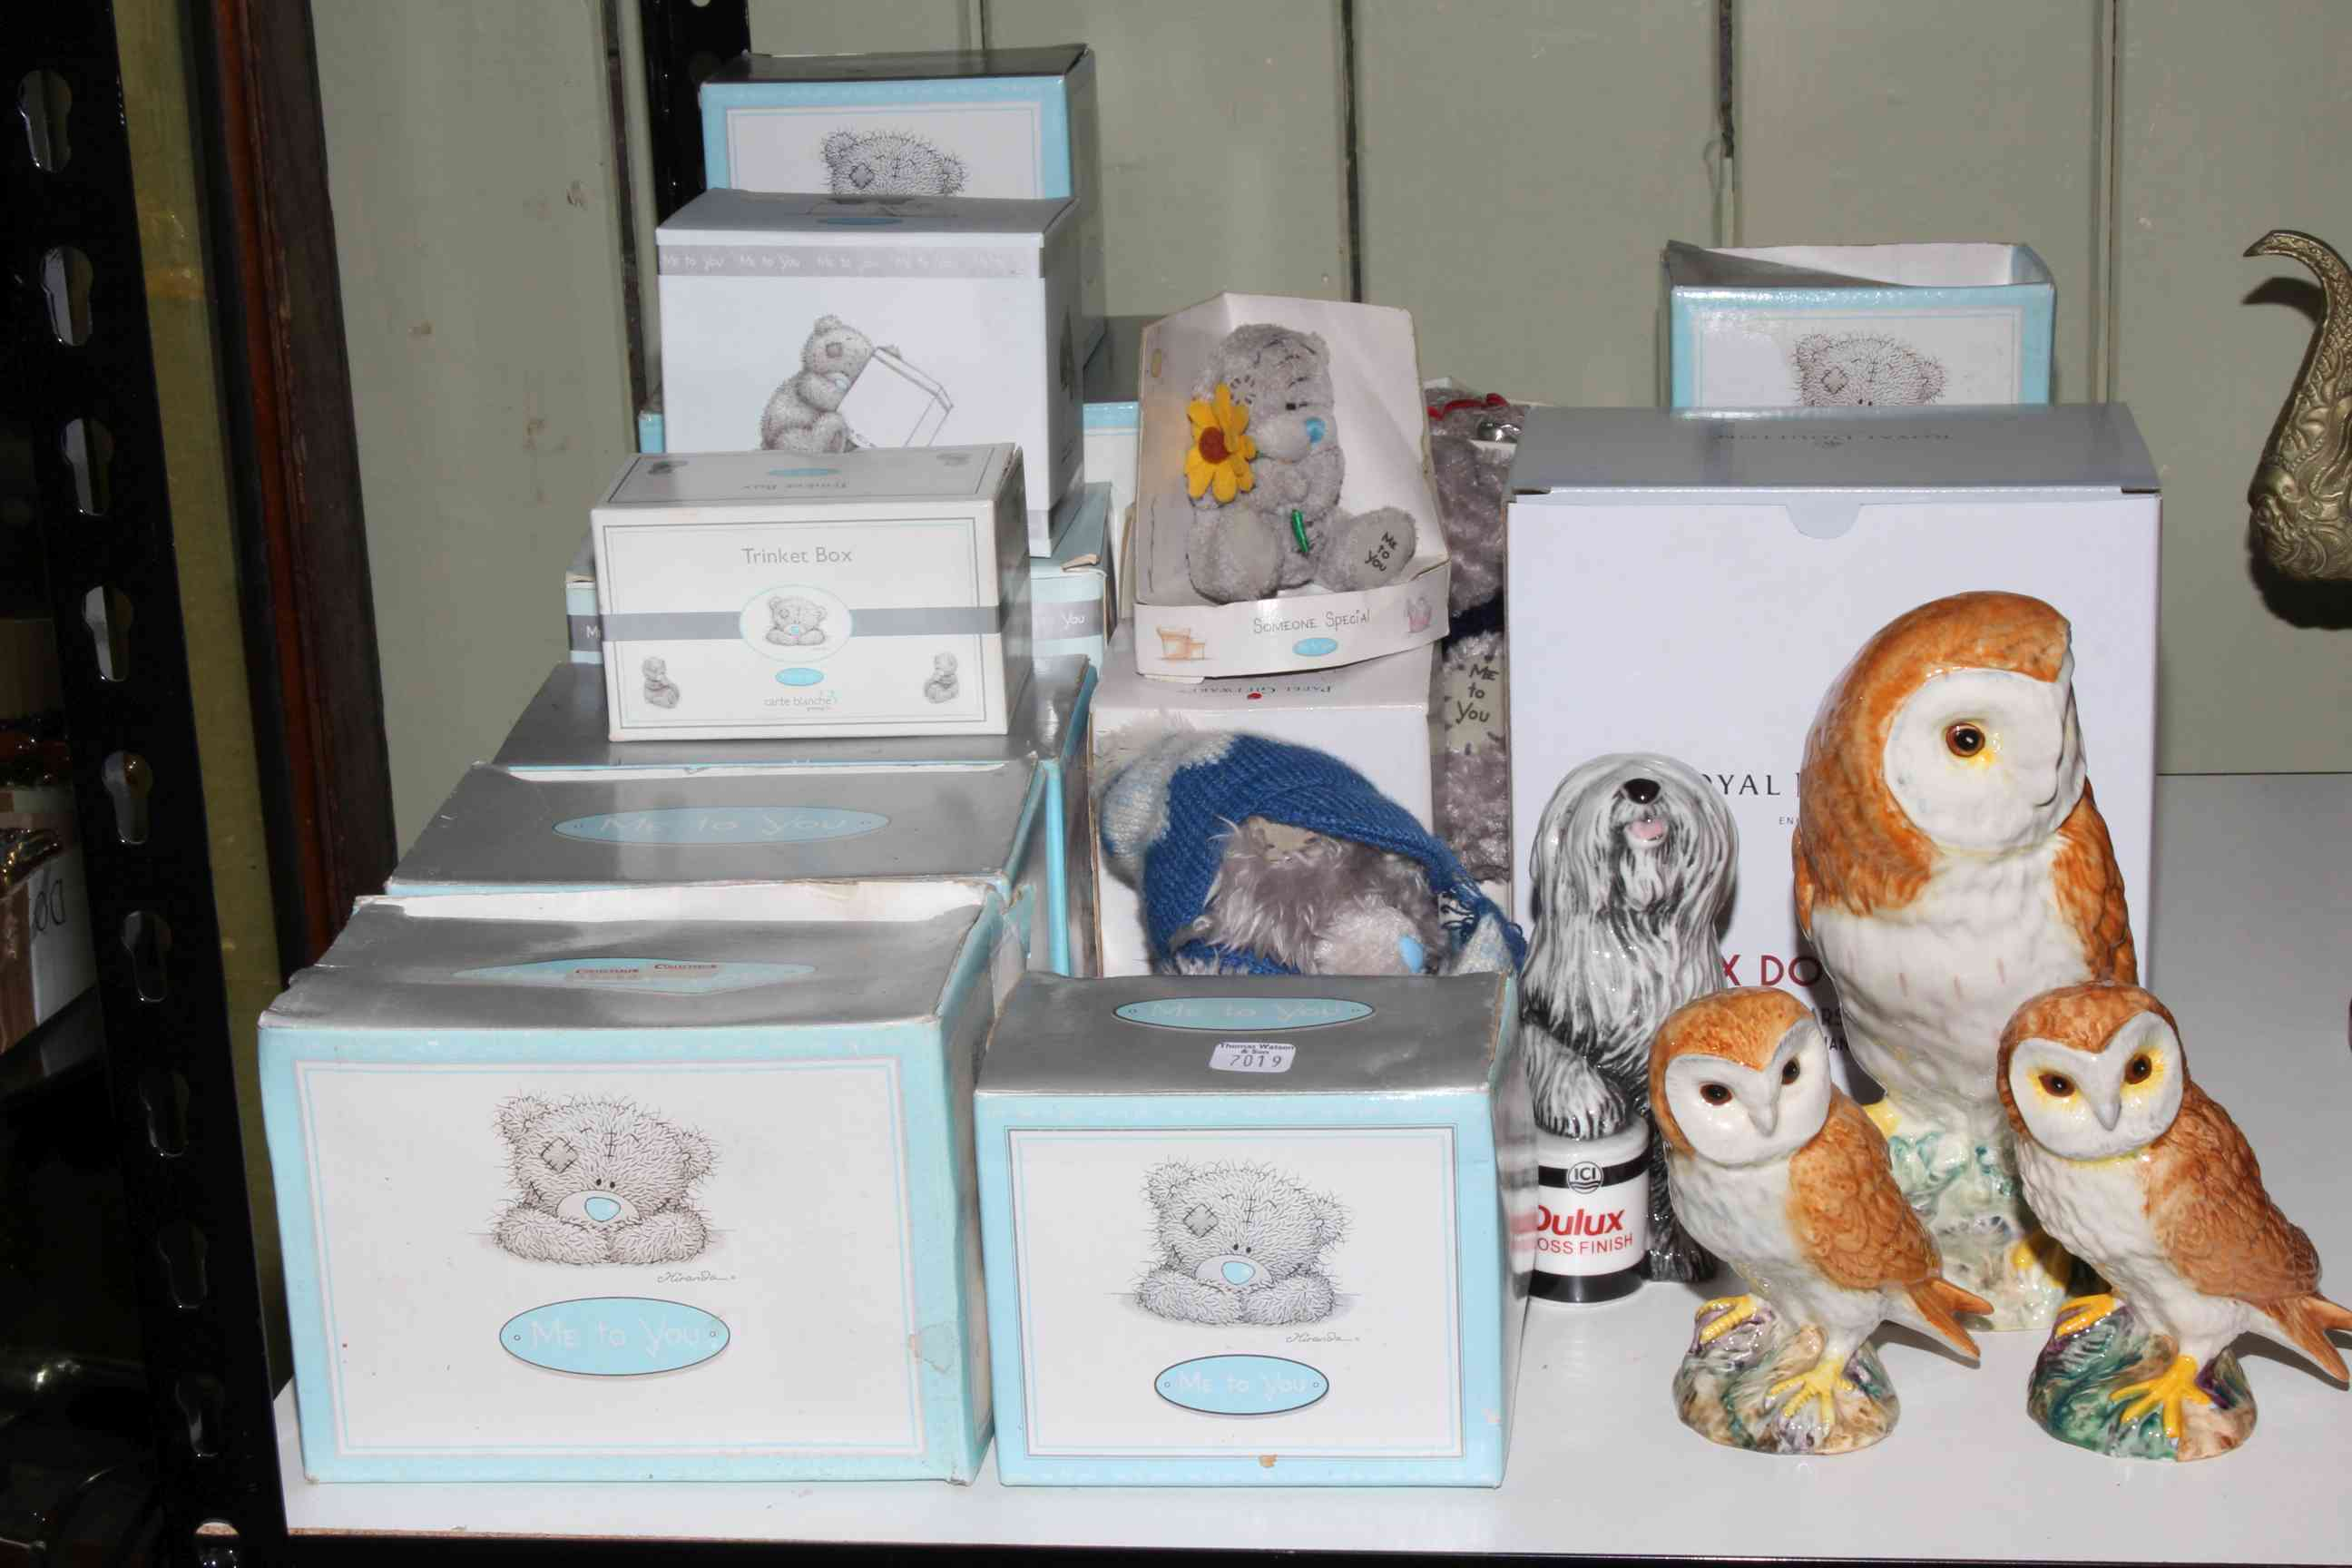 Lot 72 - Collection of ceramics and figurines including Me to You Bears, Beswick Owls,